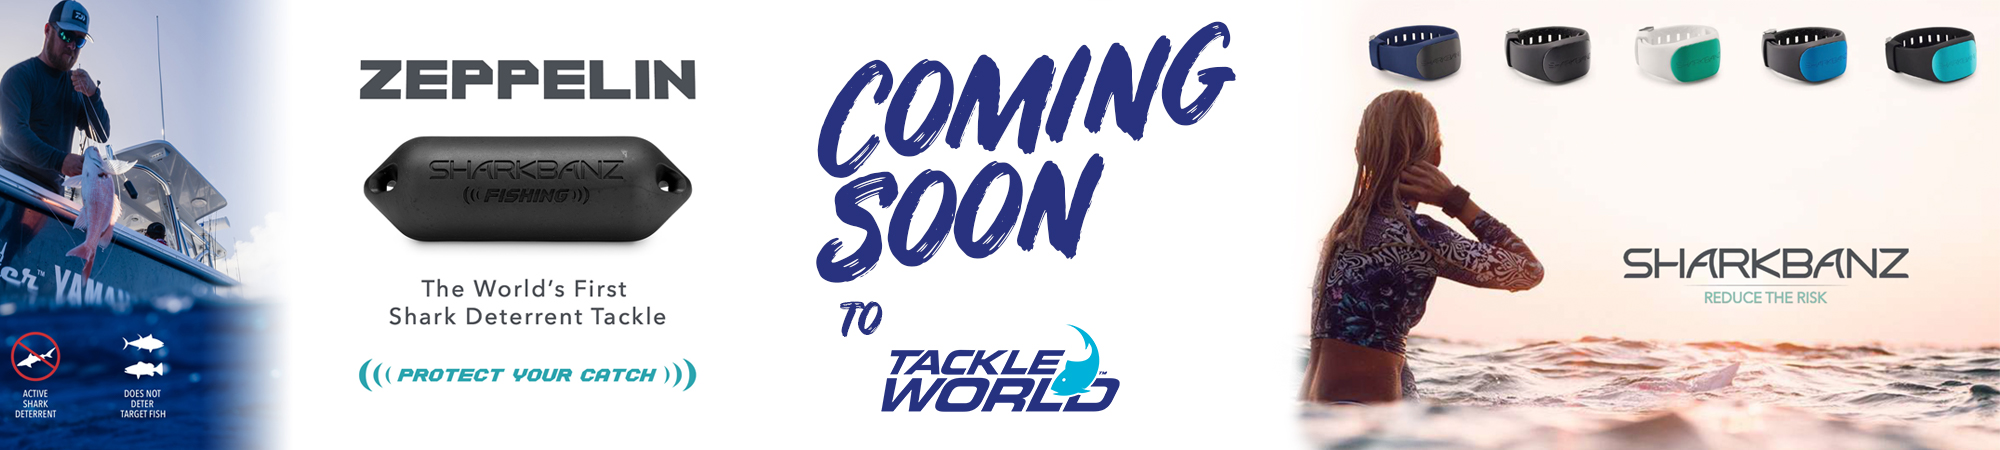 Sharkbanz Coming Soon to a Tackle World Store near you